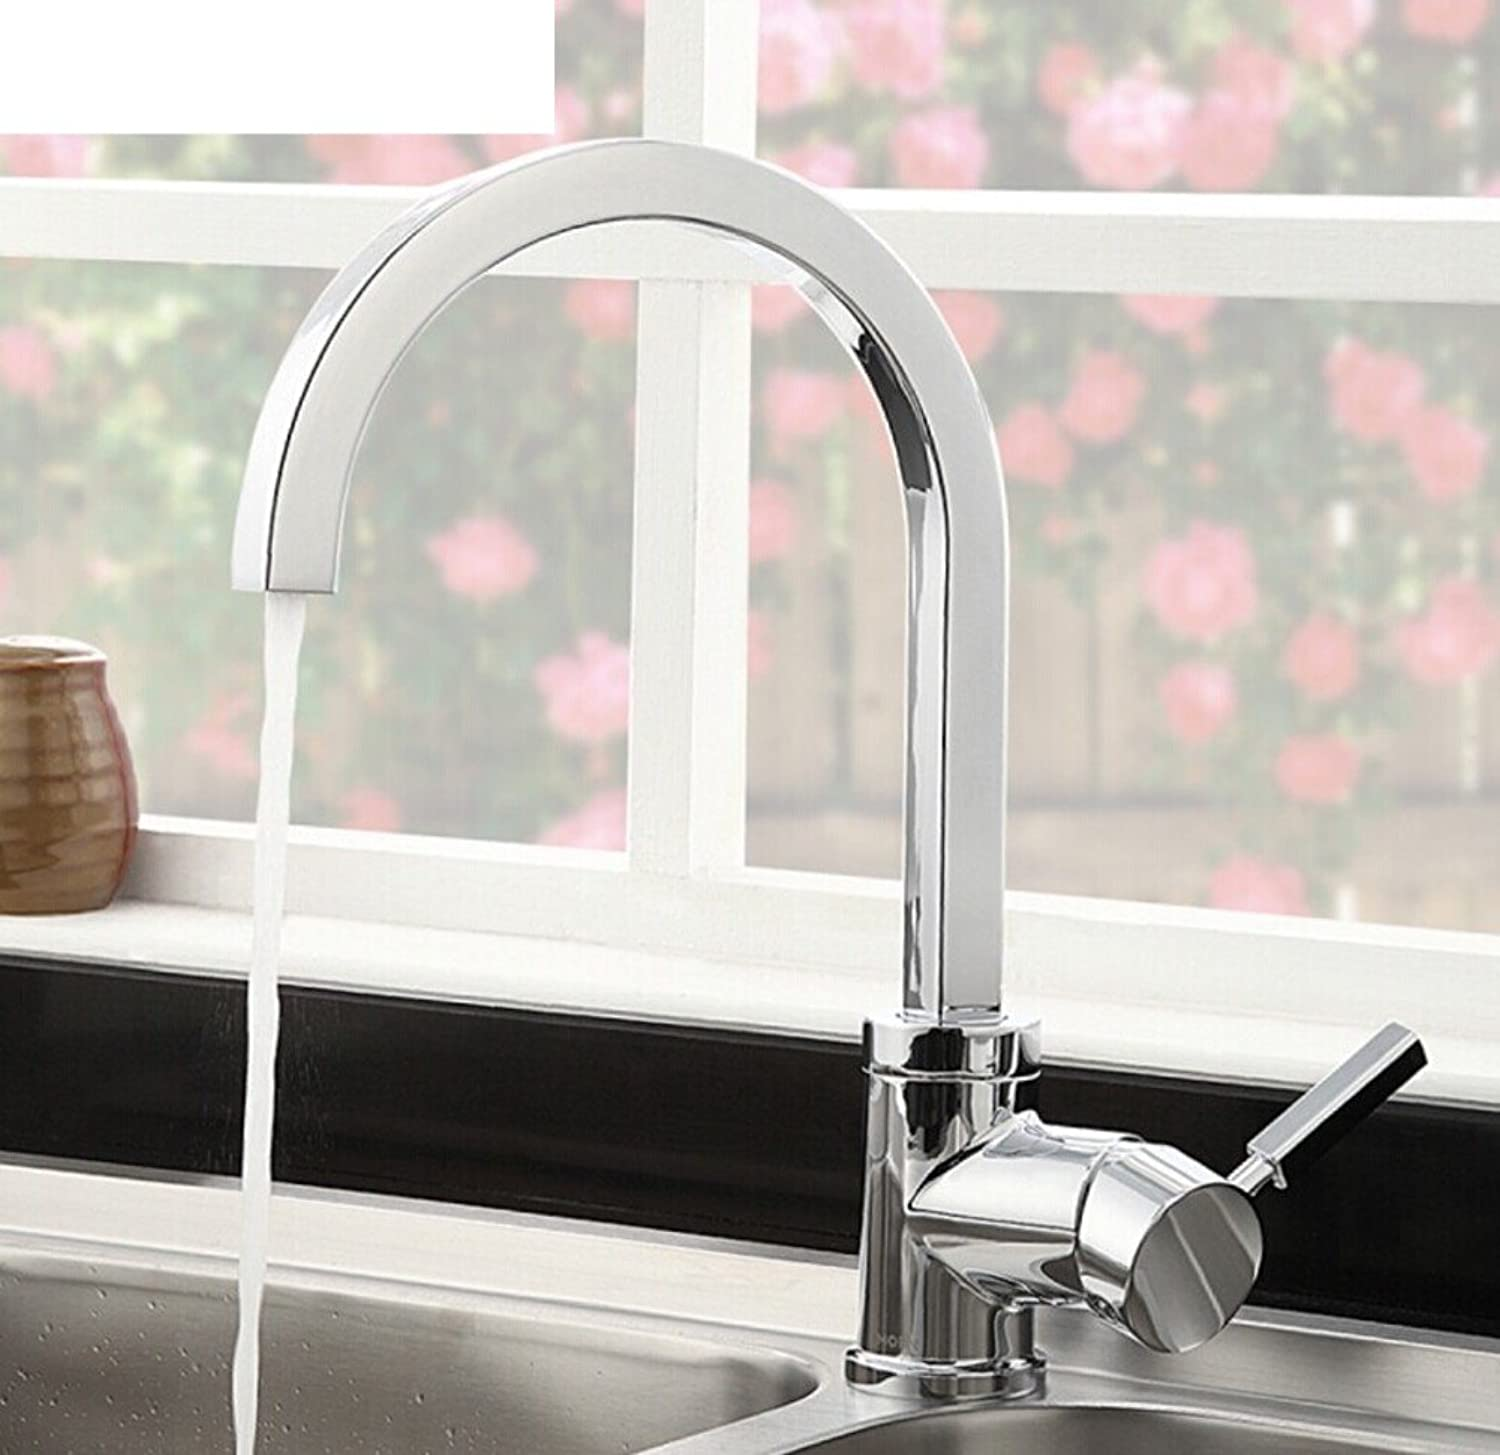 ZHF Hot and cold kitchen faucet hole redatable sink faucet KITCHEN faucet